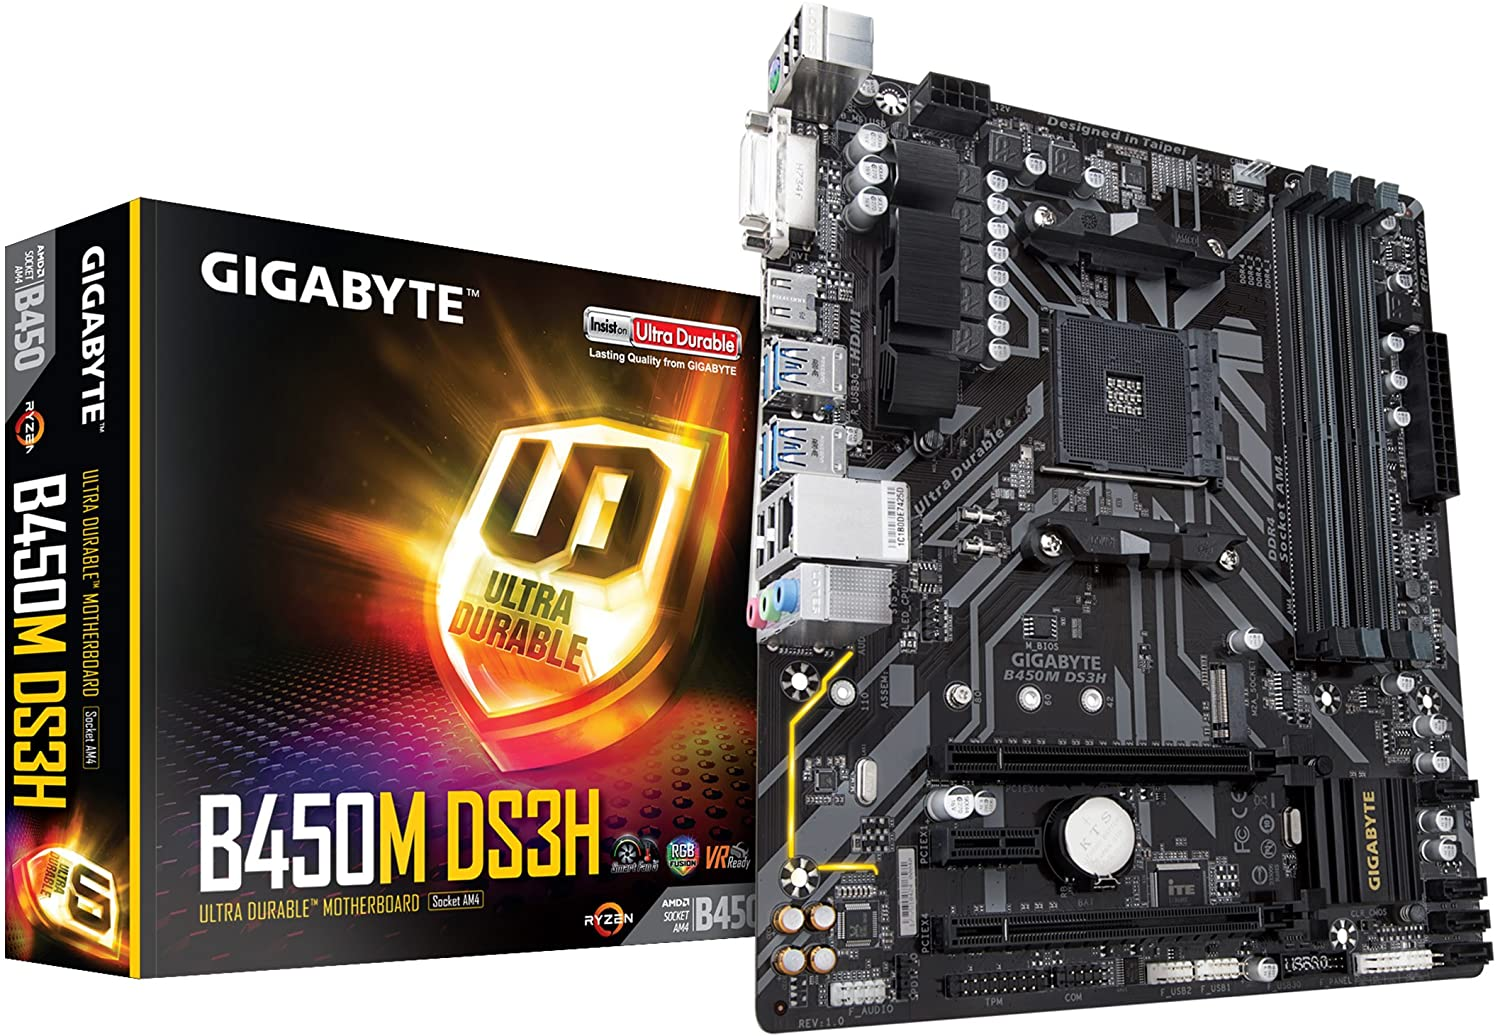 Best 8 Motherboards For Ryzen 3 2200G - Top Reviews-digitalupbeat